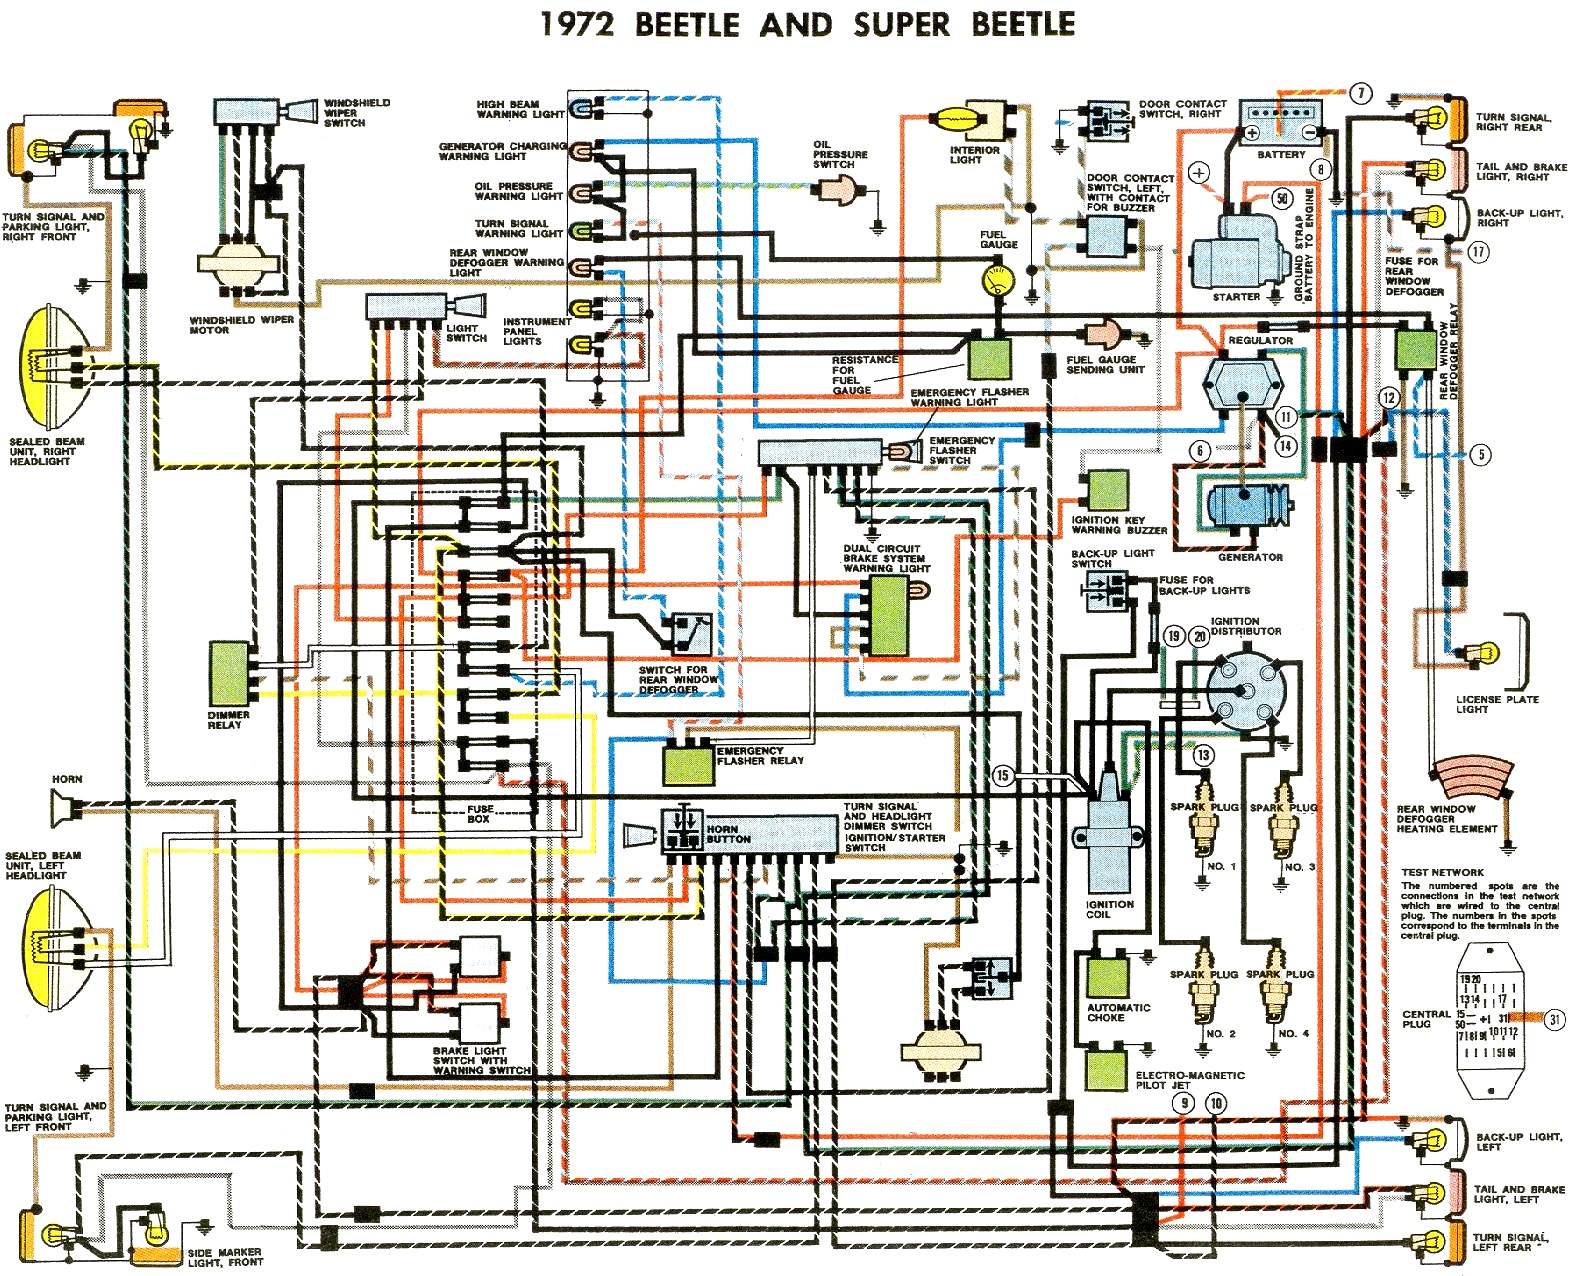 bug_72 volkswagen beetle questions back up light wiring? cargurus 1972 vw beetle fuse box diagram at nearapp.co